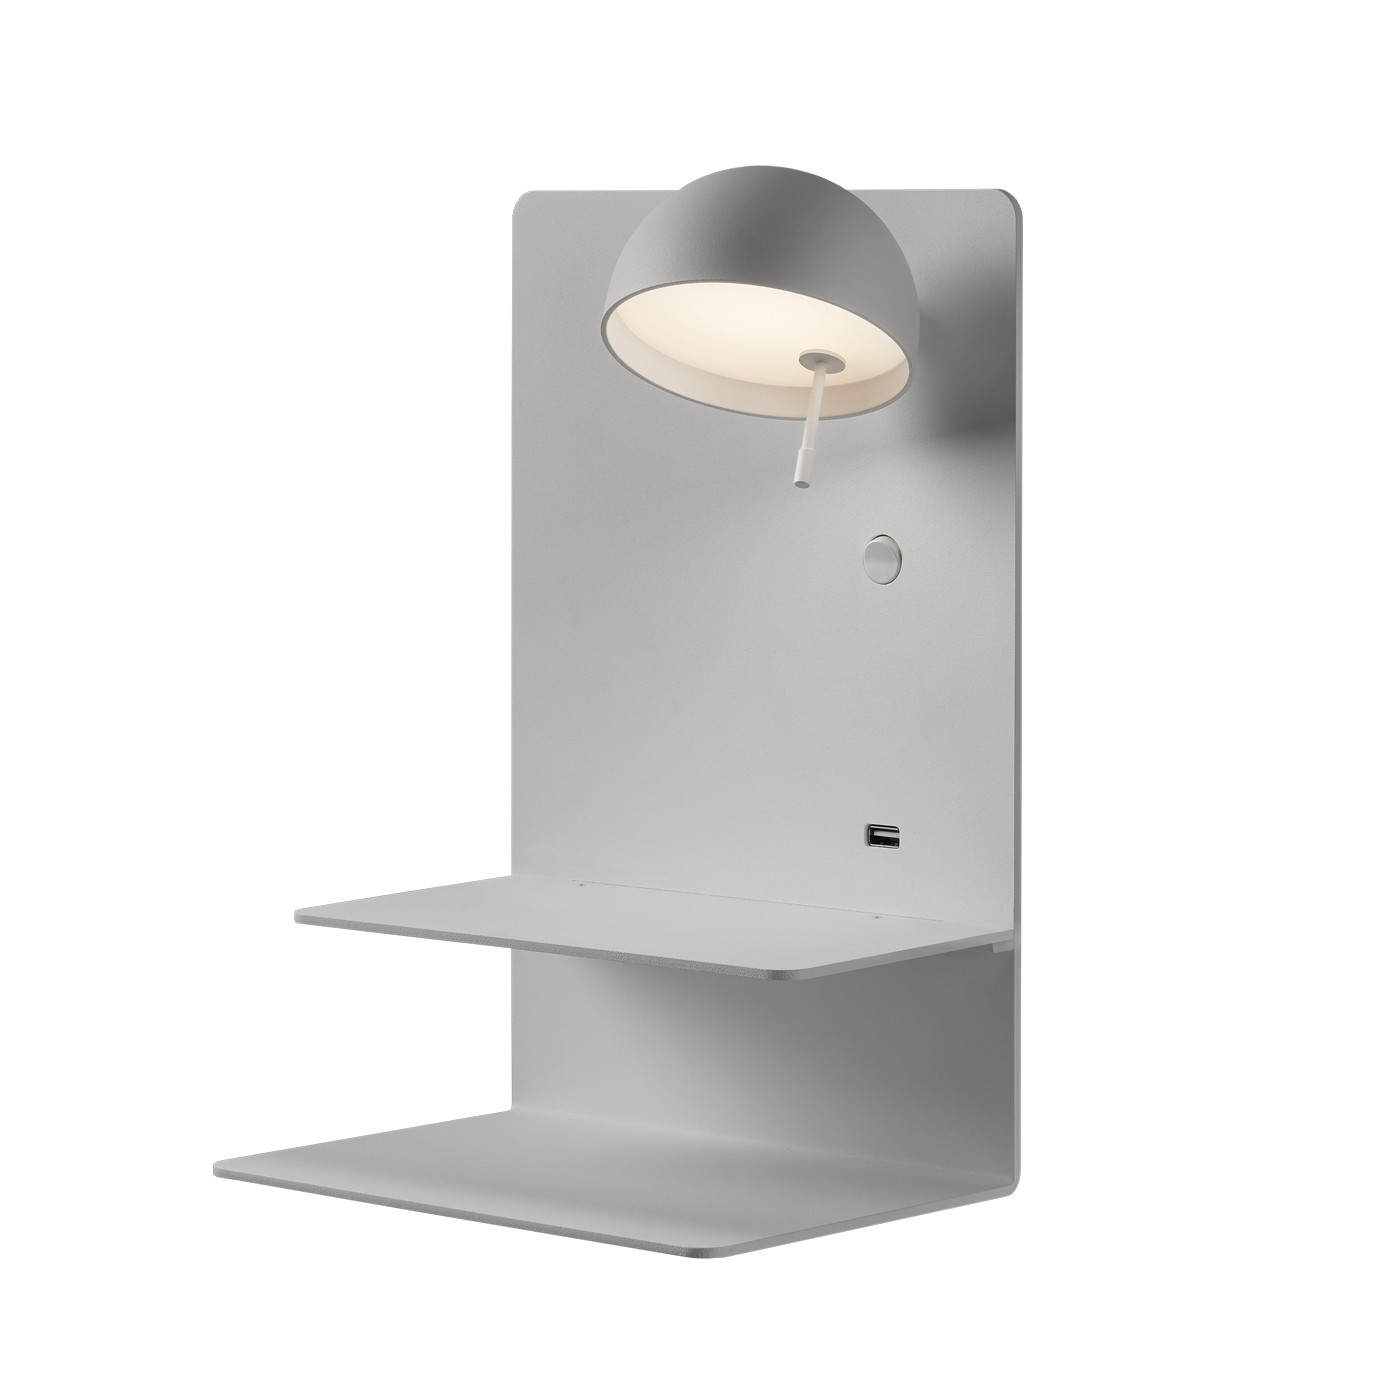 Bover Beddy A/04 LED